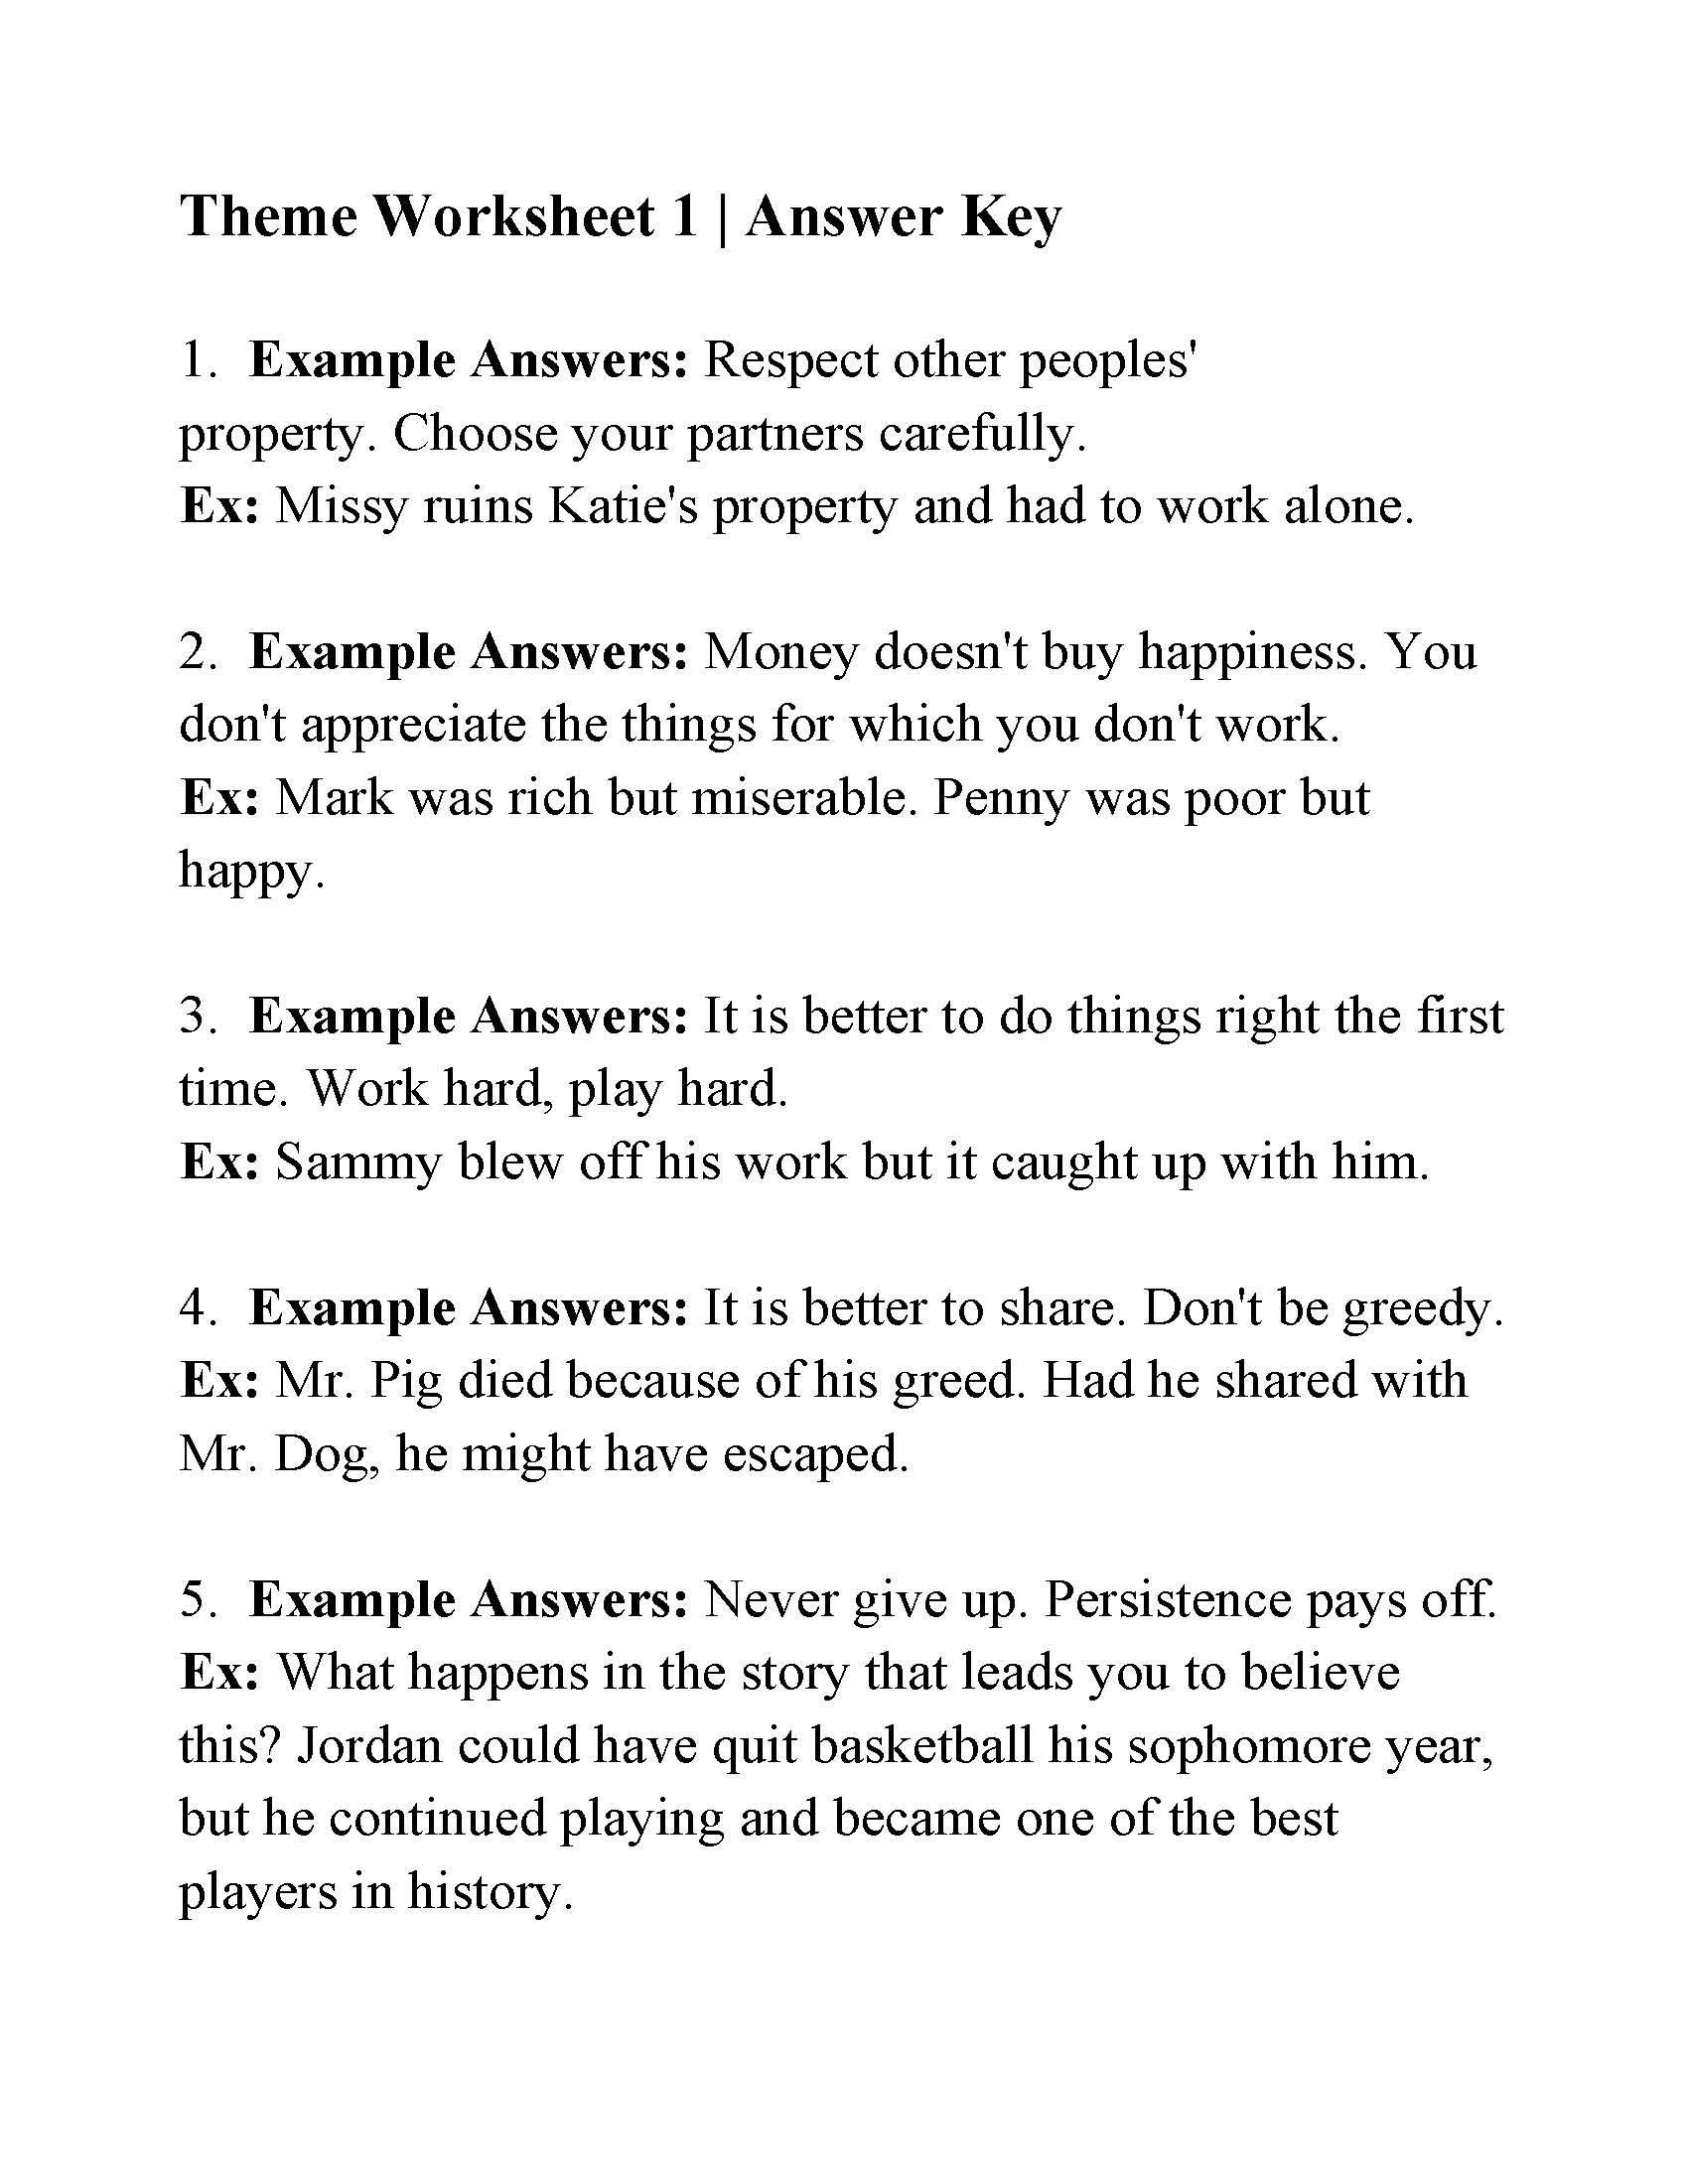 Theme Worksheets Middle School This is the Answer Key for the theme Worksheet 1